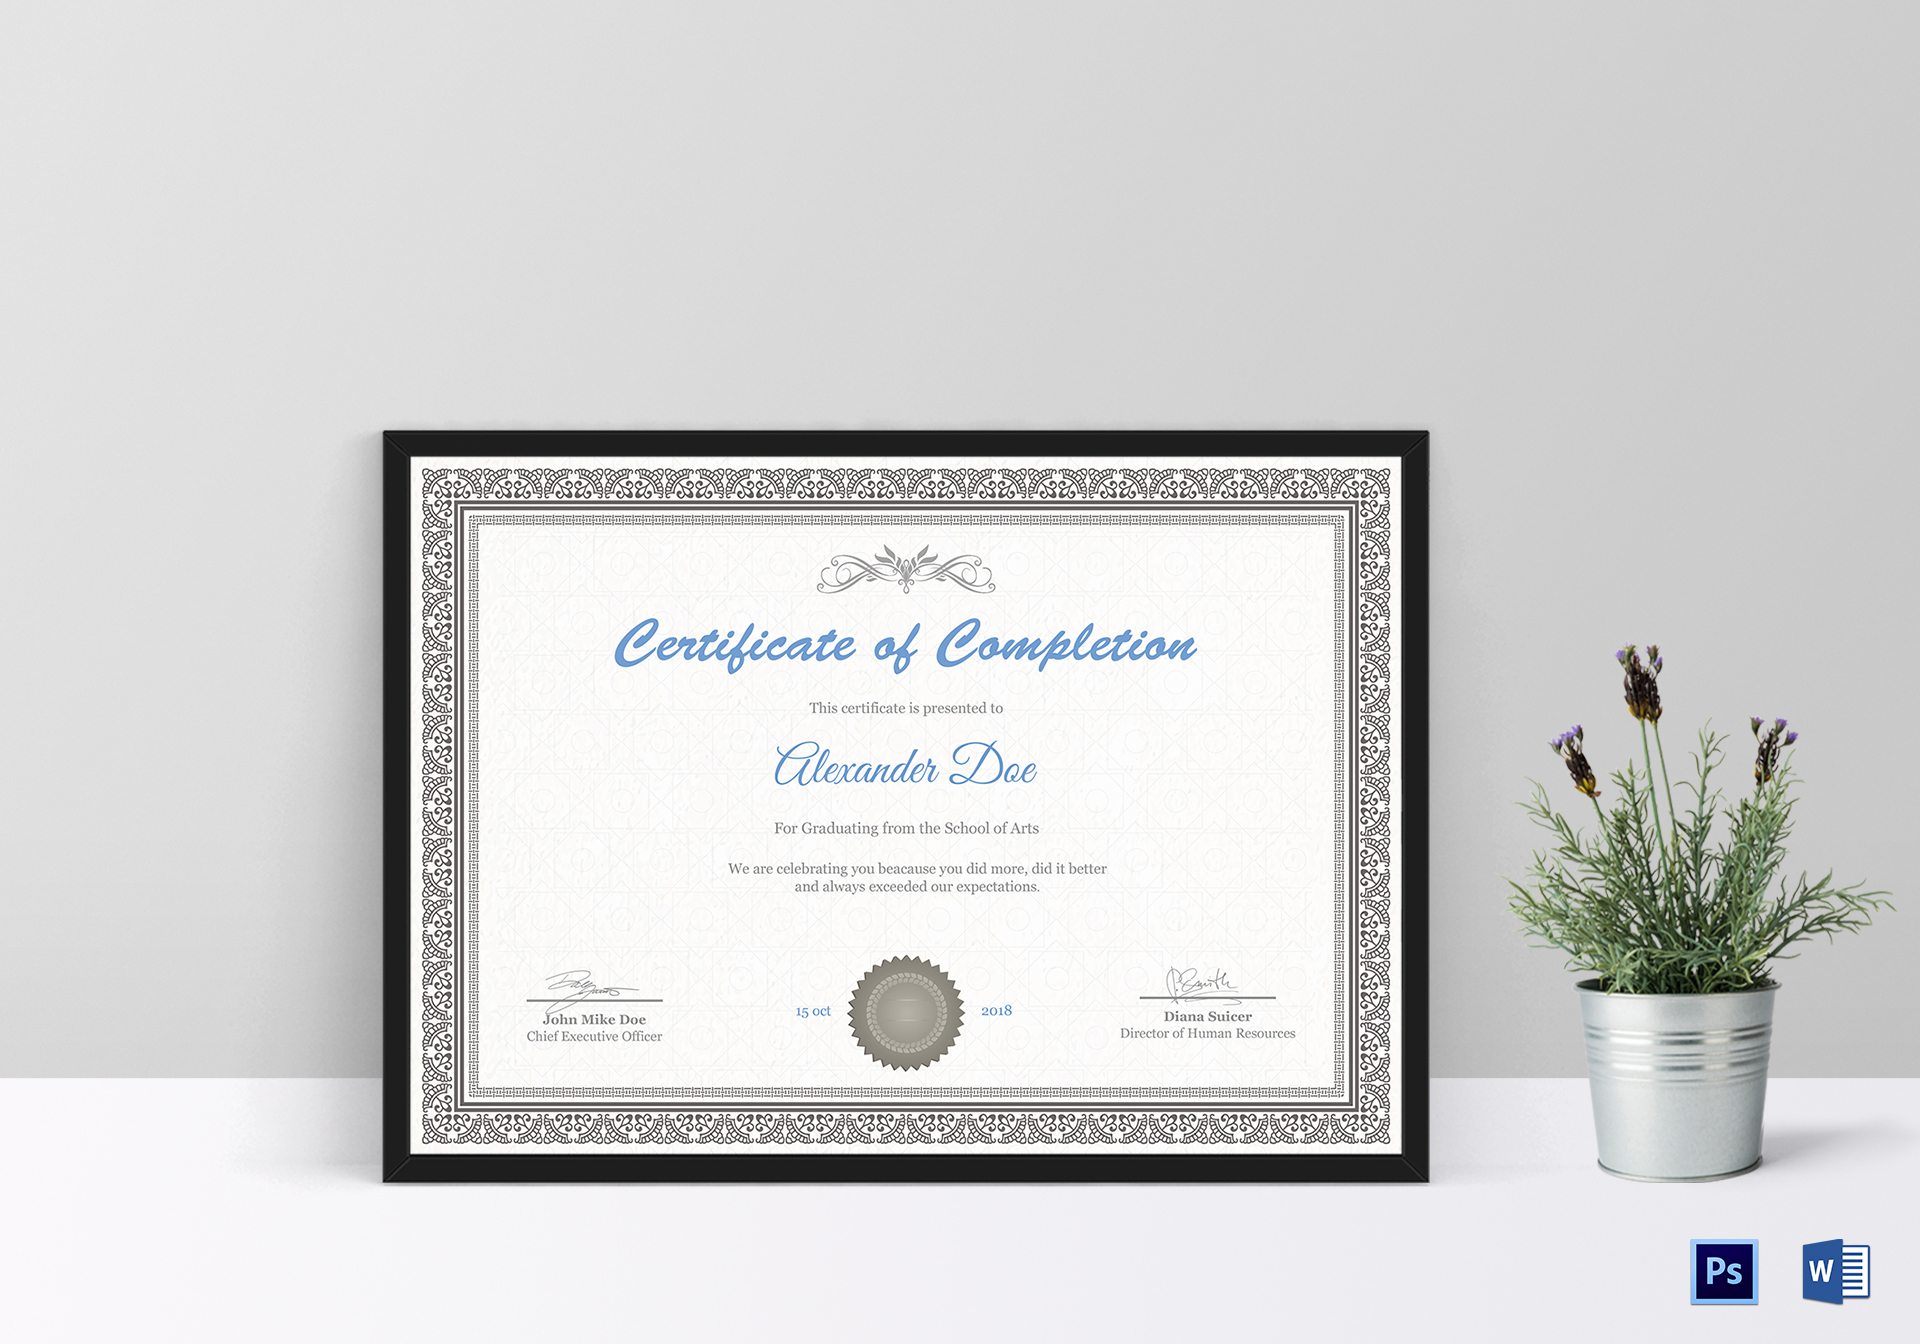 Graduation Certificate Design Template in PSD, Word